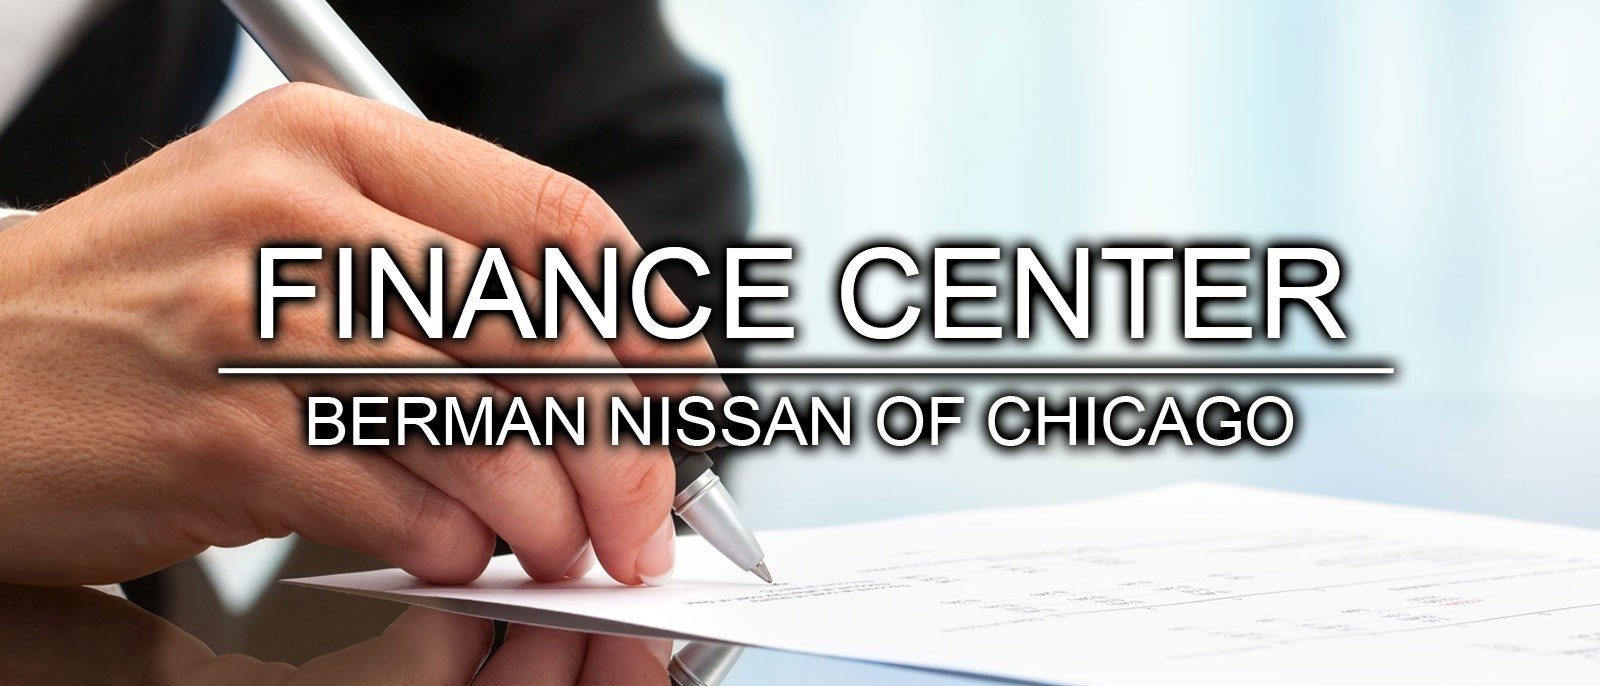 Berman Nissan of Chicago Finance Center